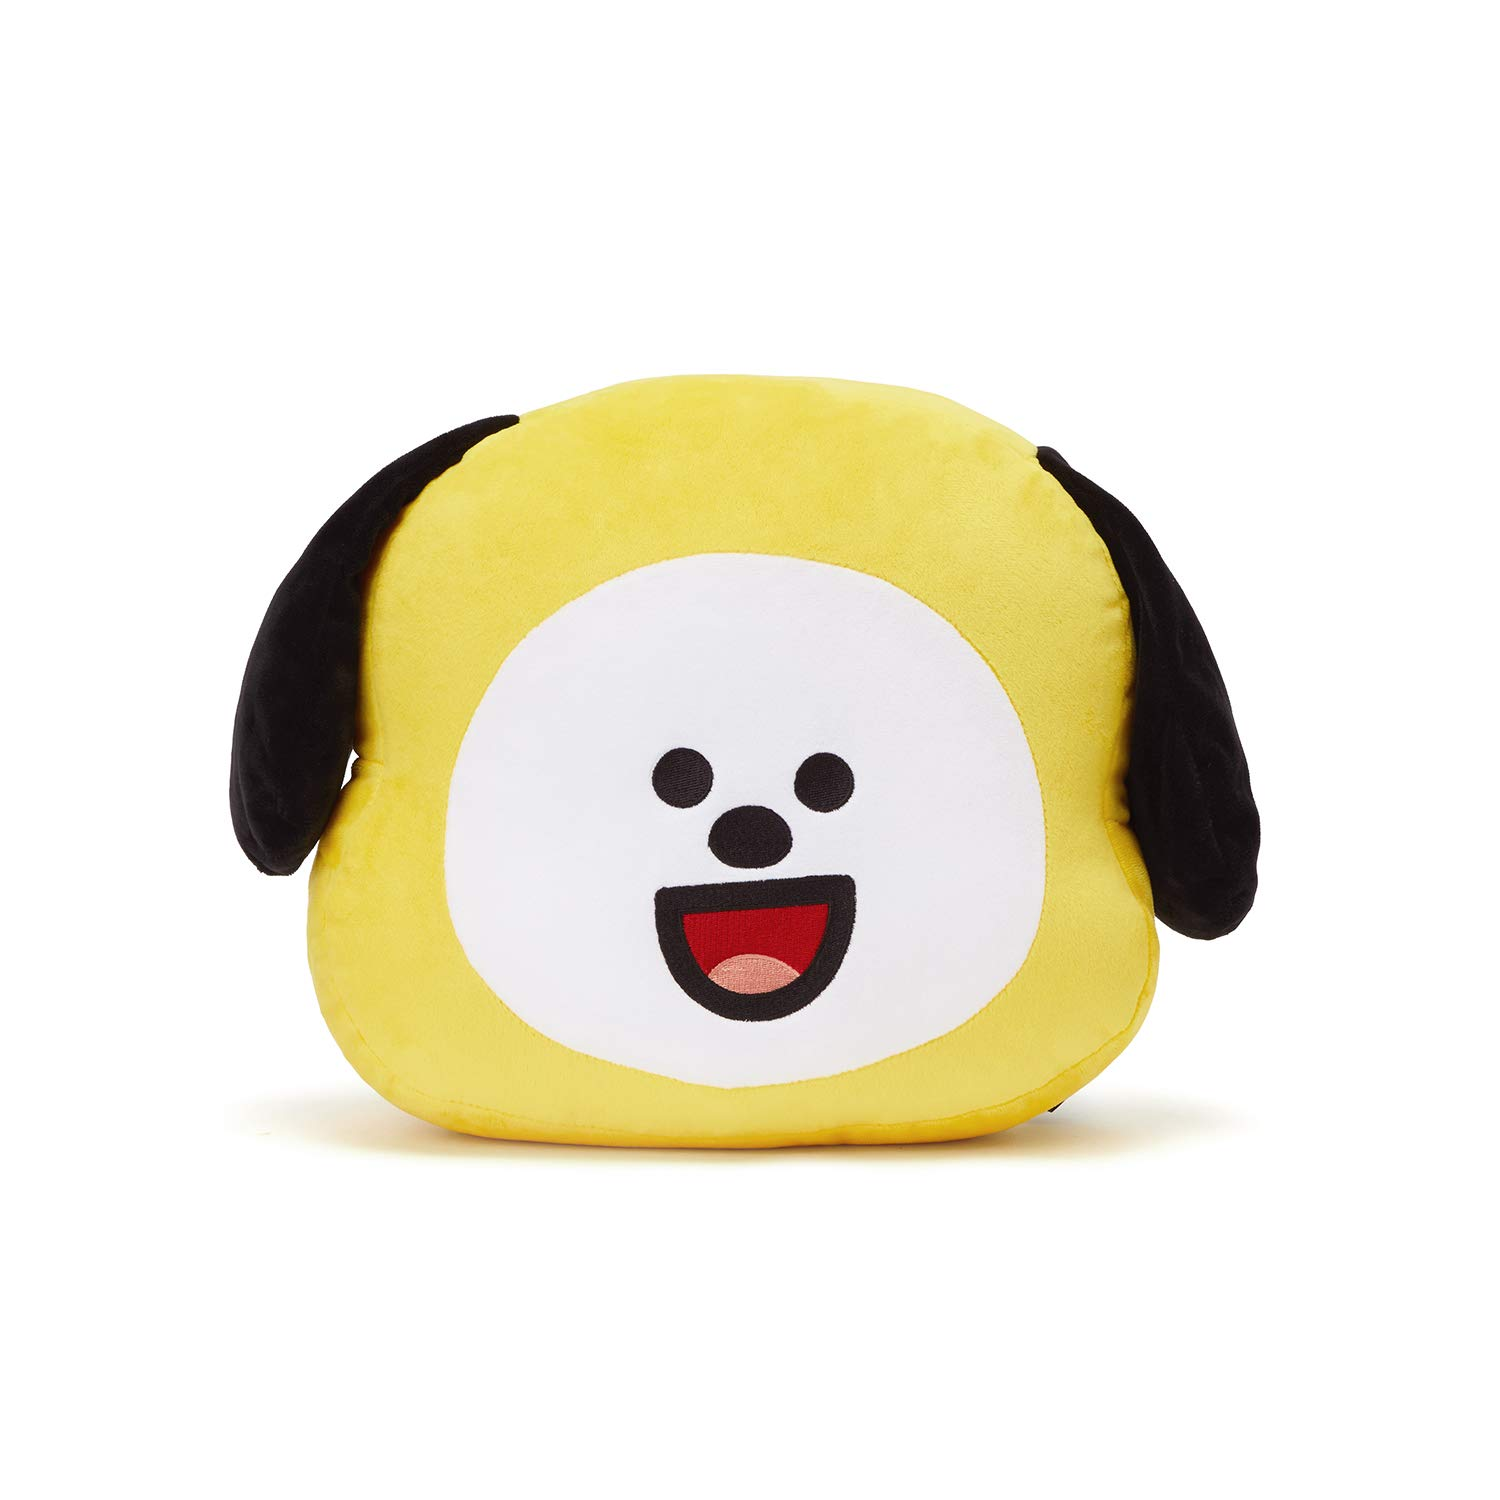 LINE FRIENDS BT21 Official Merchandise CHIMMY Smile Decorative Throw Pillows Cushion, 11 Inch